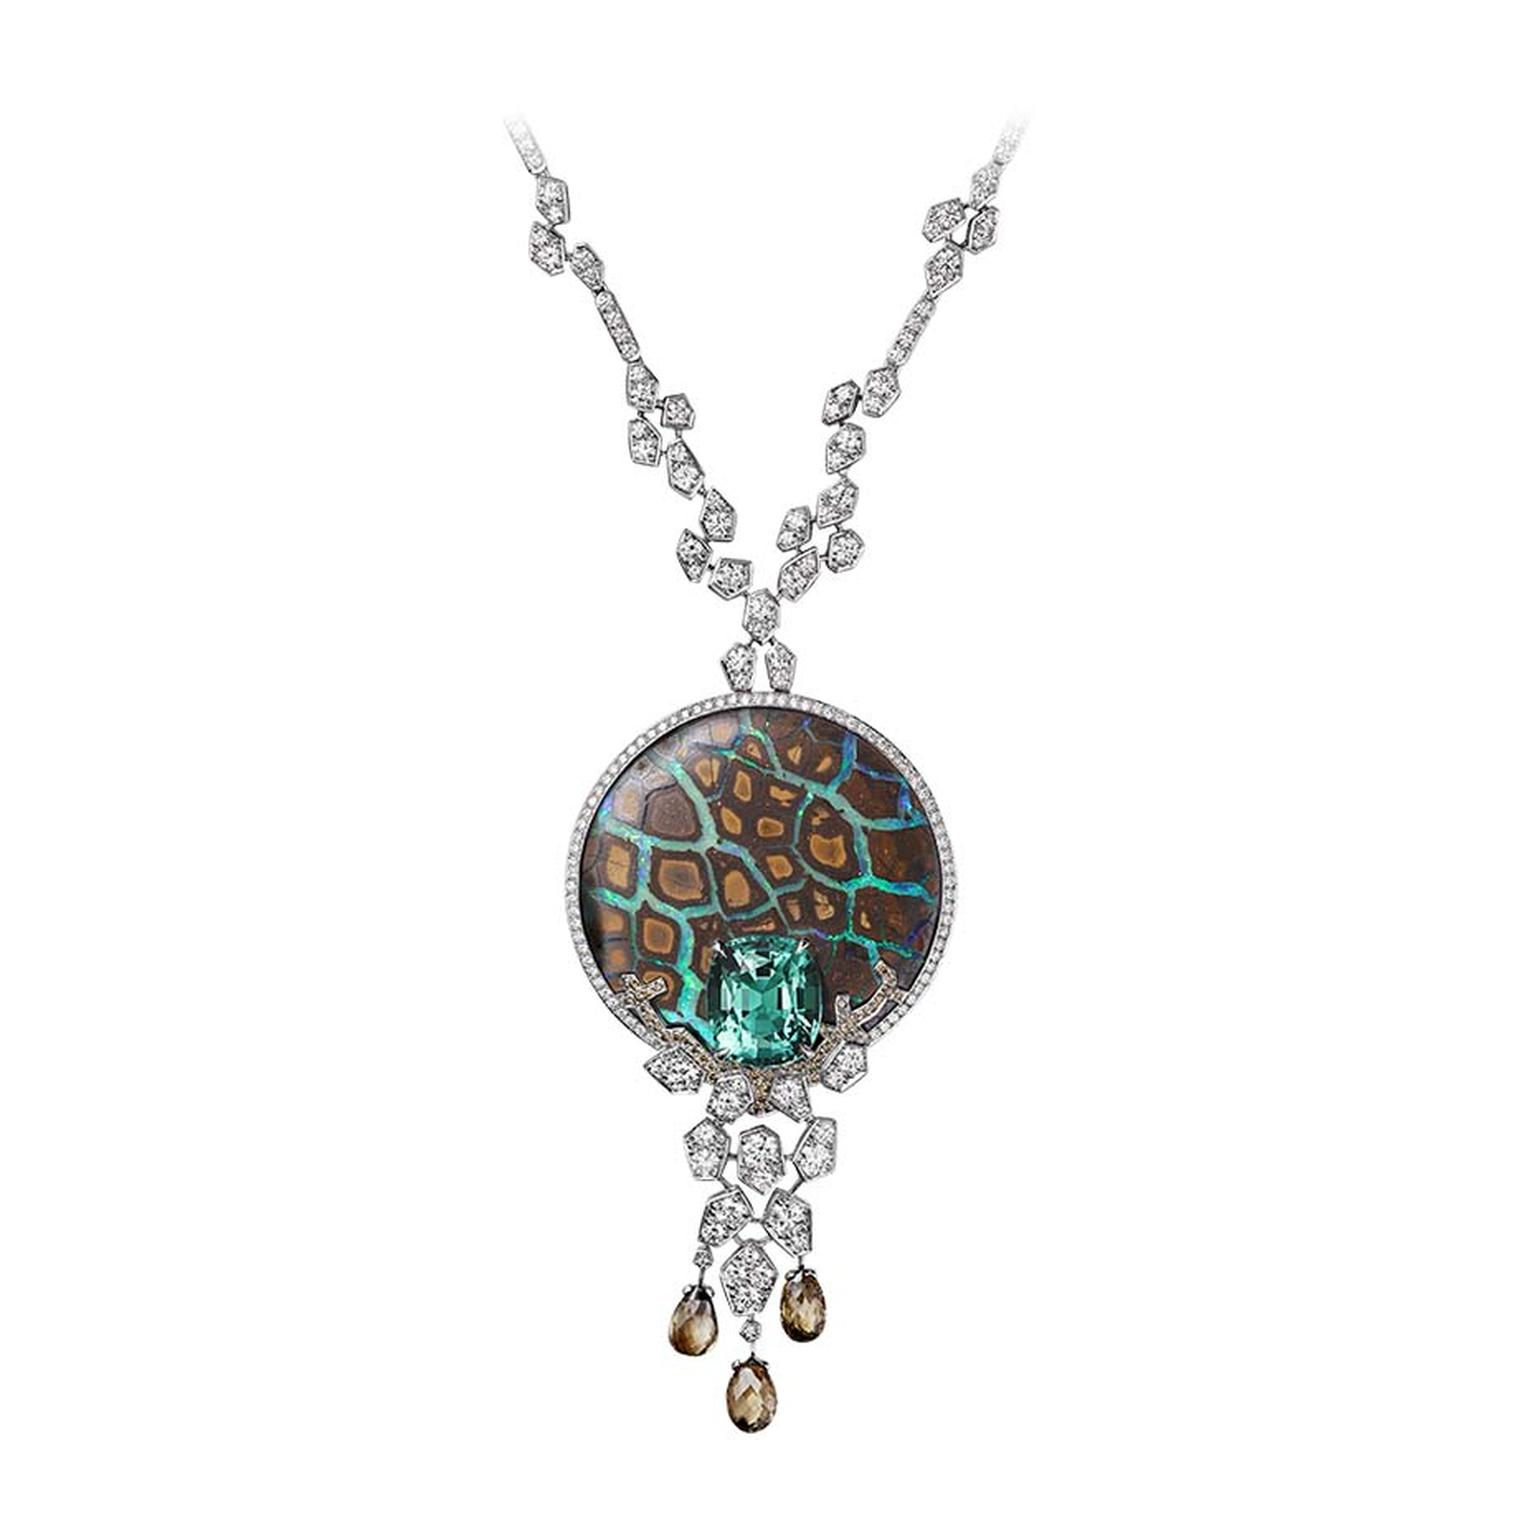 L'Odyssée de Cartier High Jewellery necklace in platinum, set with an opal, 9.28ct cushion-shaped emerald, brown diamonds and brilliant-cut diamonds